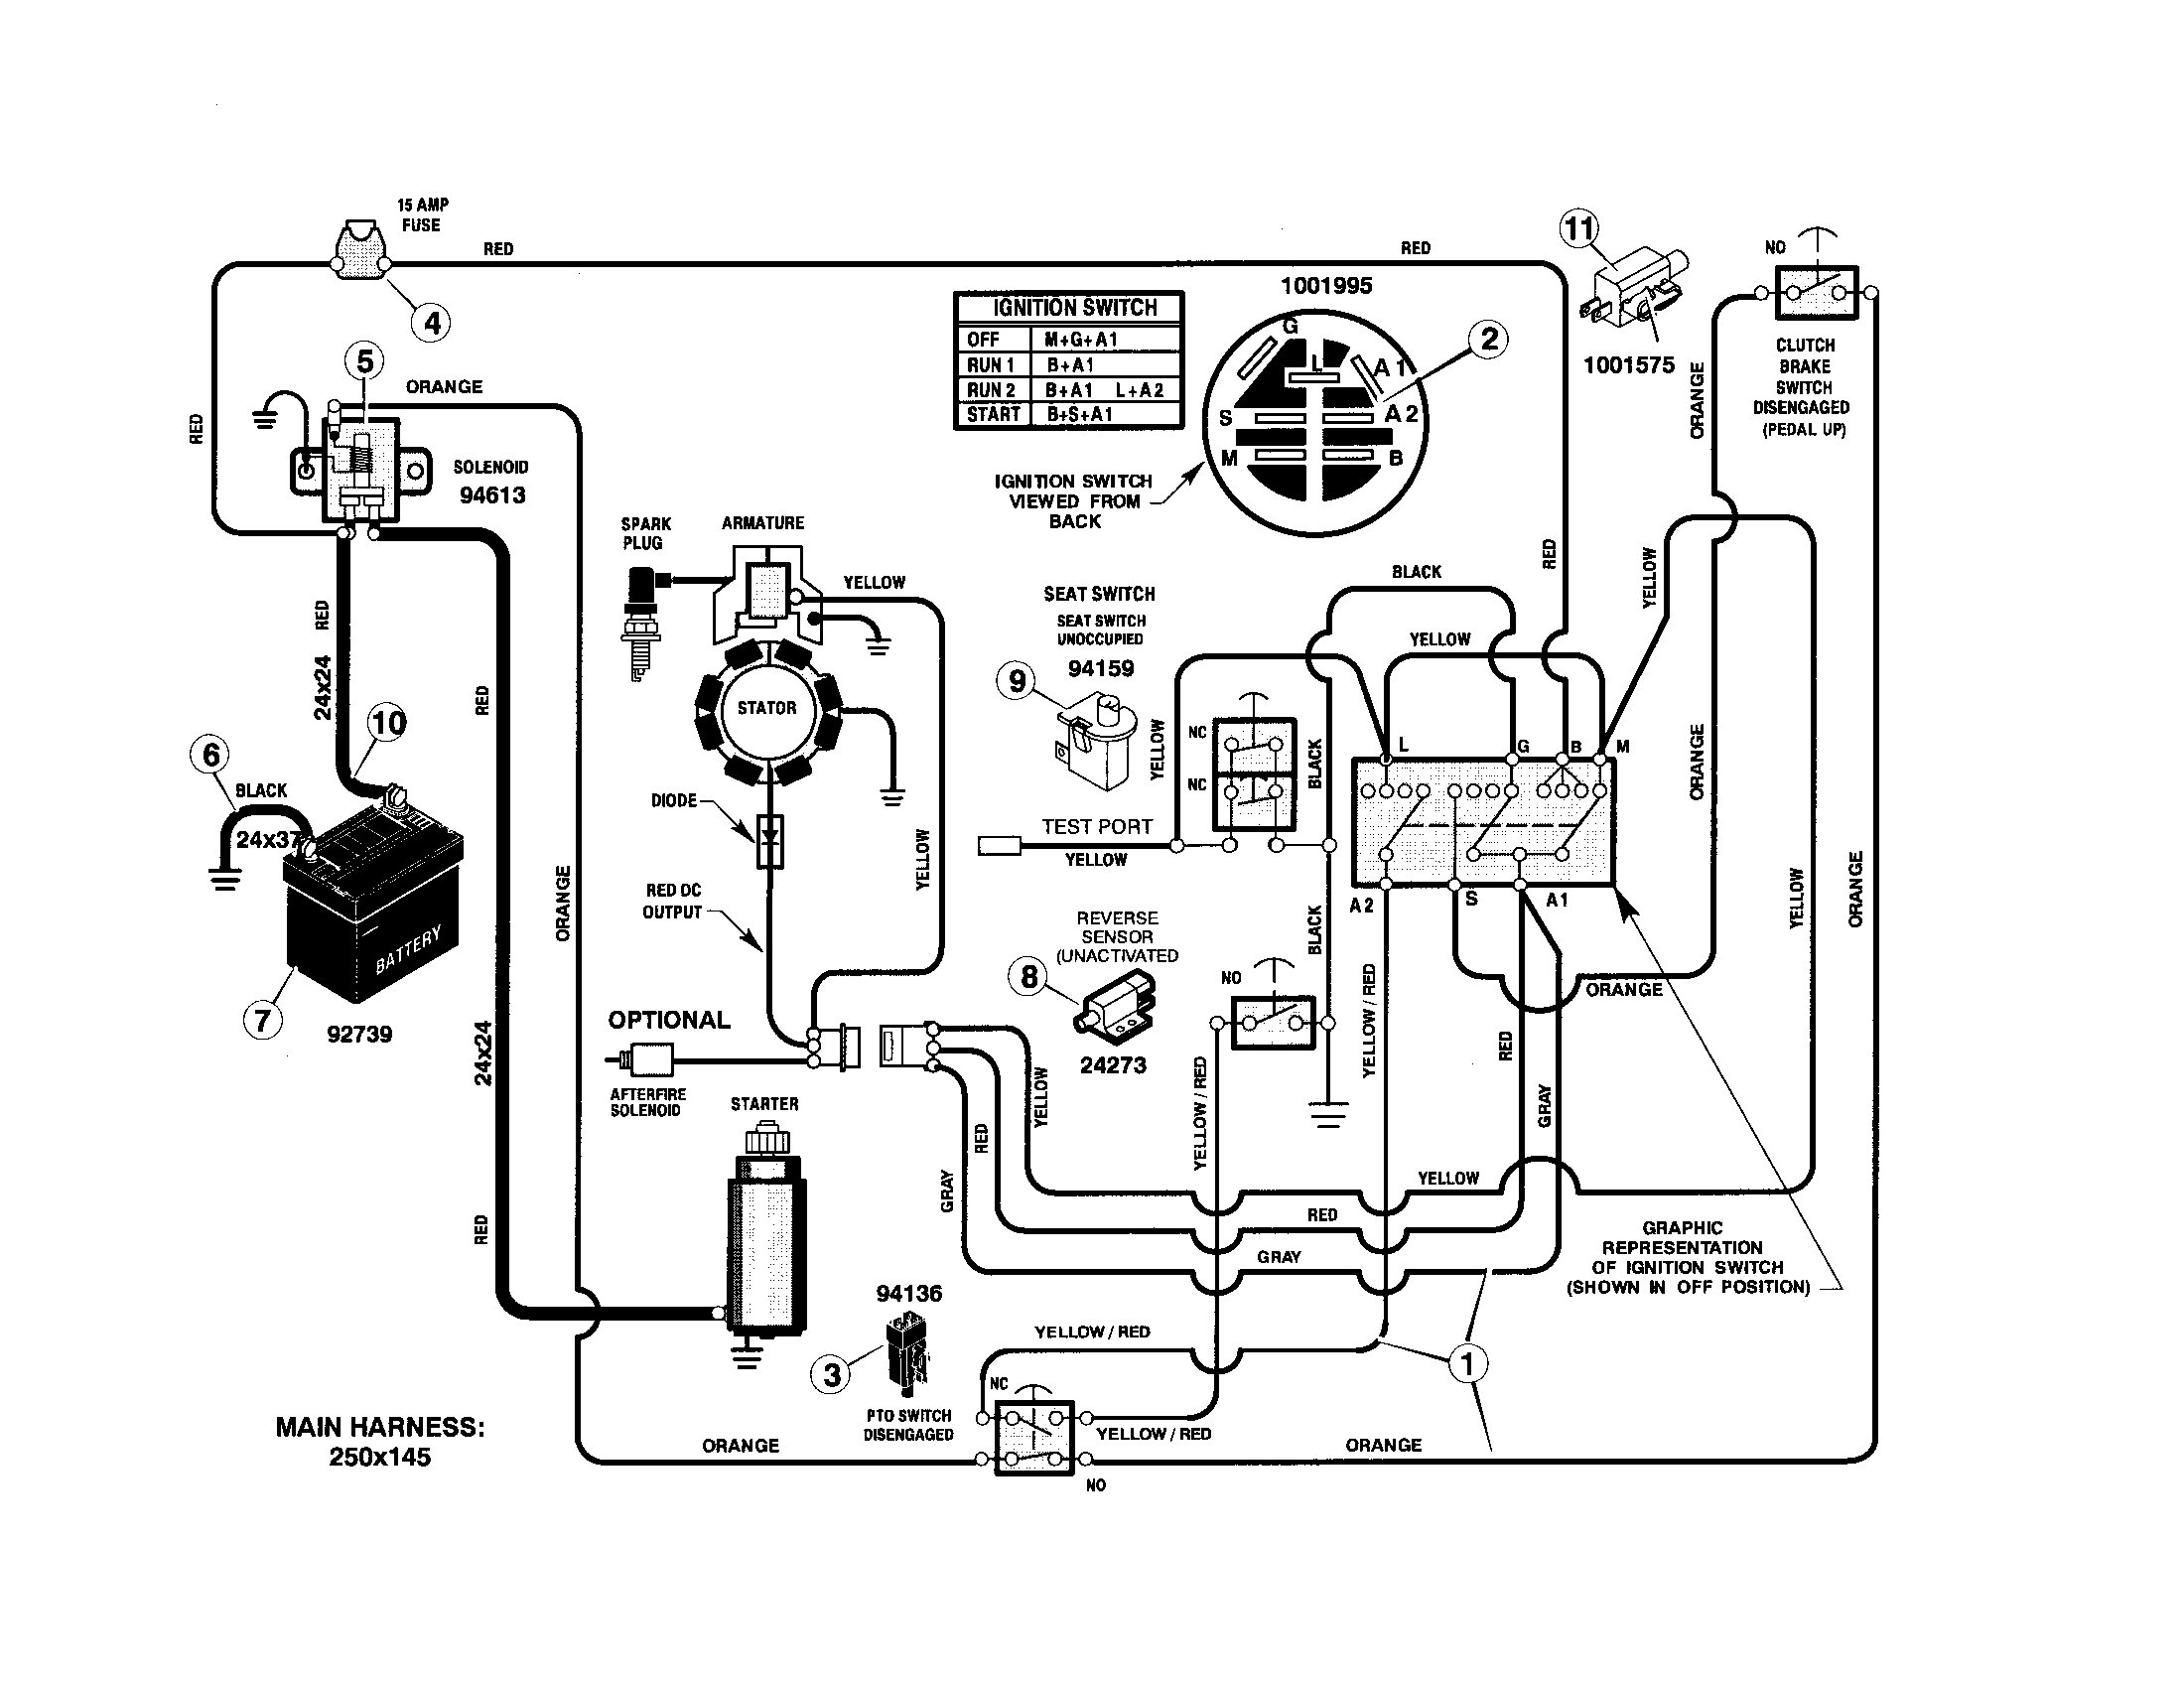 john deere d130 wiring diagram with main panel to sub